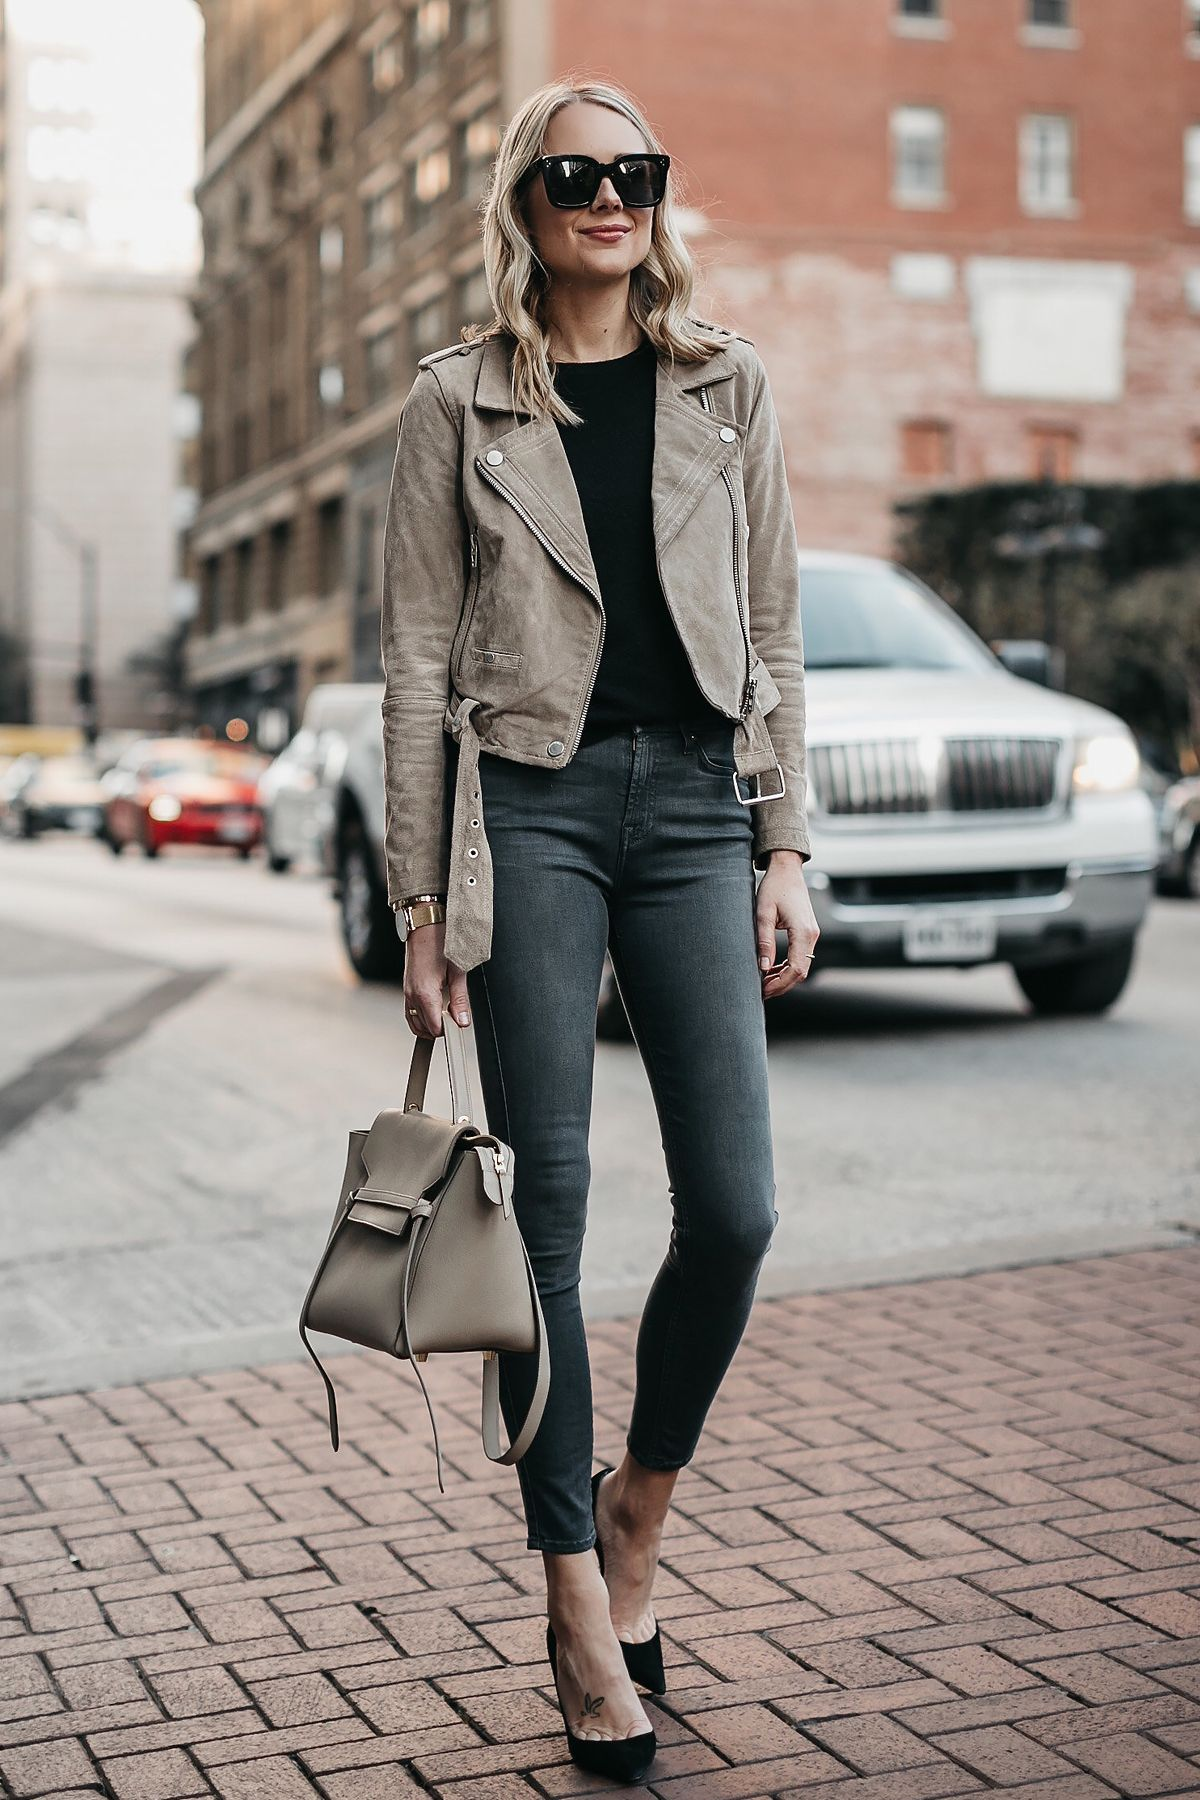 66fd22fcaf Blonde Woman Wearing Blanknyc Suede Moto Jacket Black Sweater 7 For All  Mankind Grey Skinny Jeans Celine Mini Belt Bag Christian Louboutin Black  Pumps ...